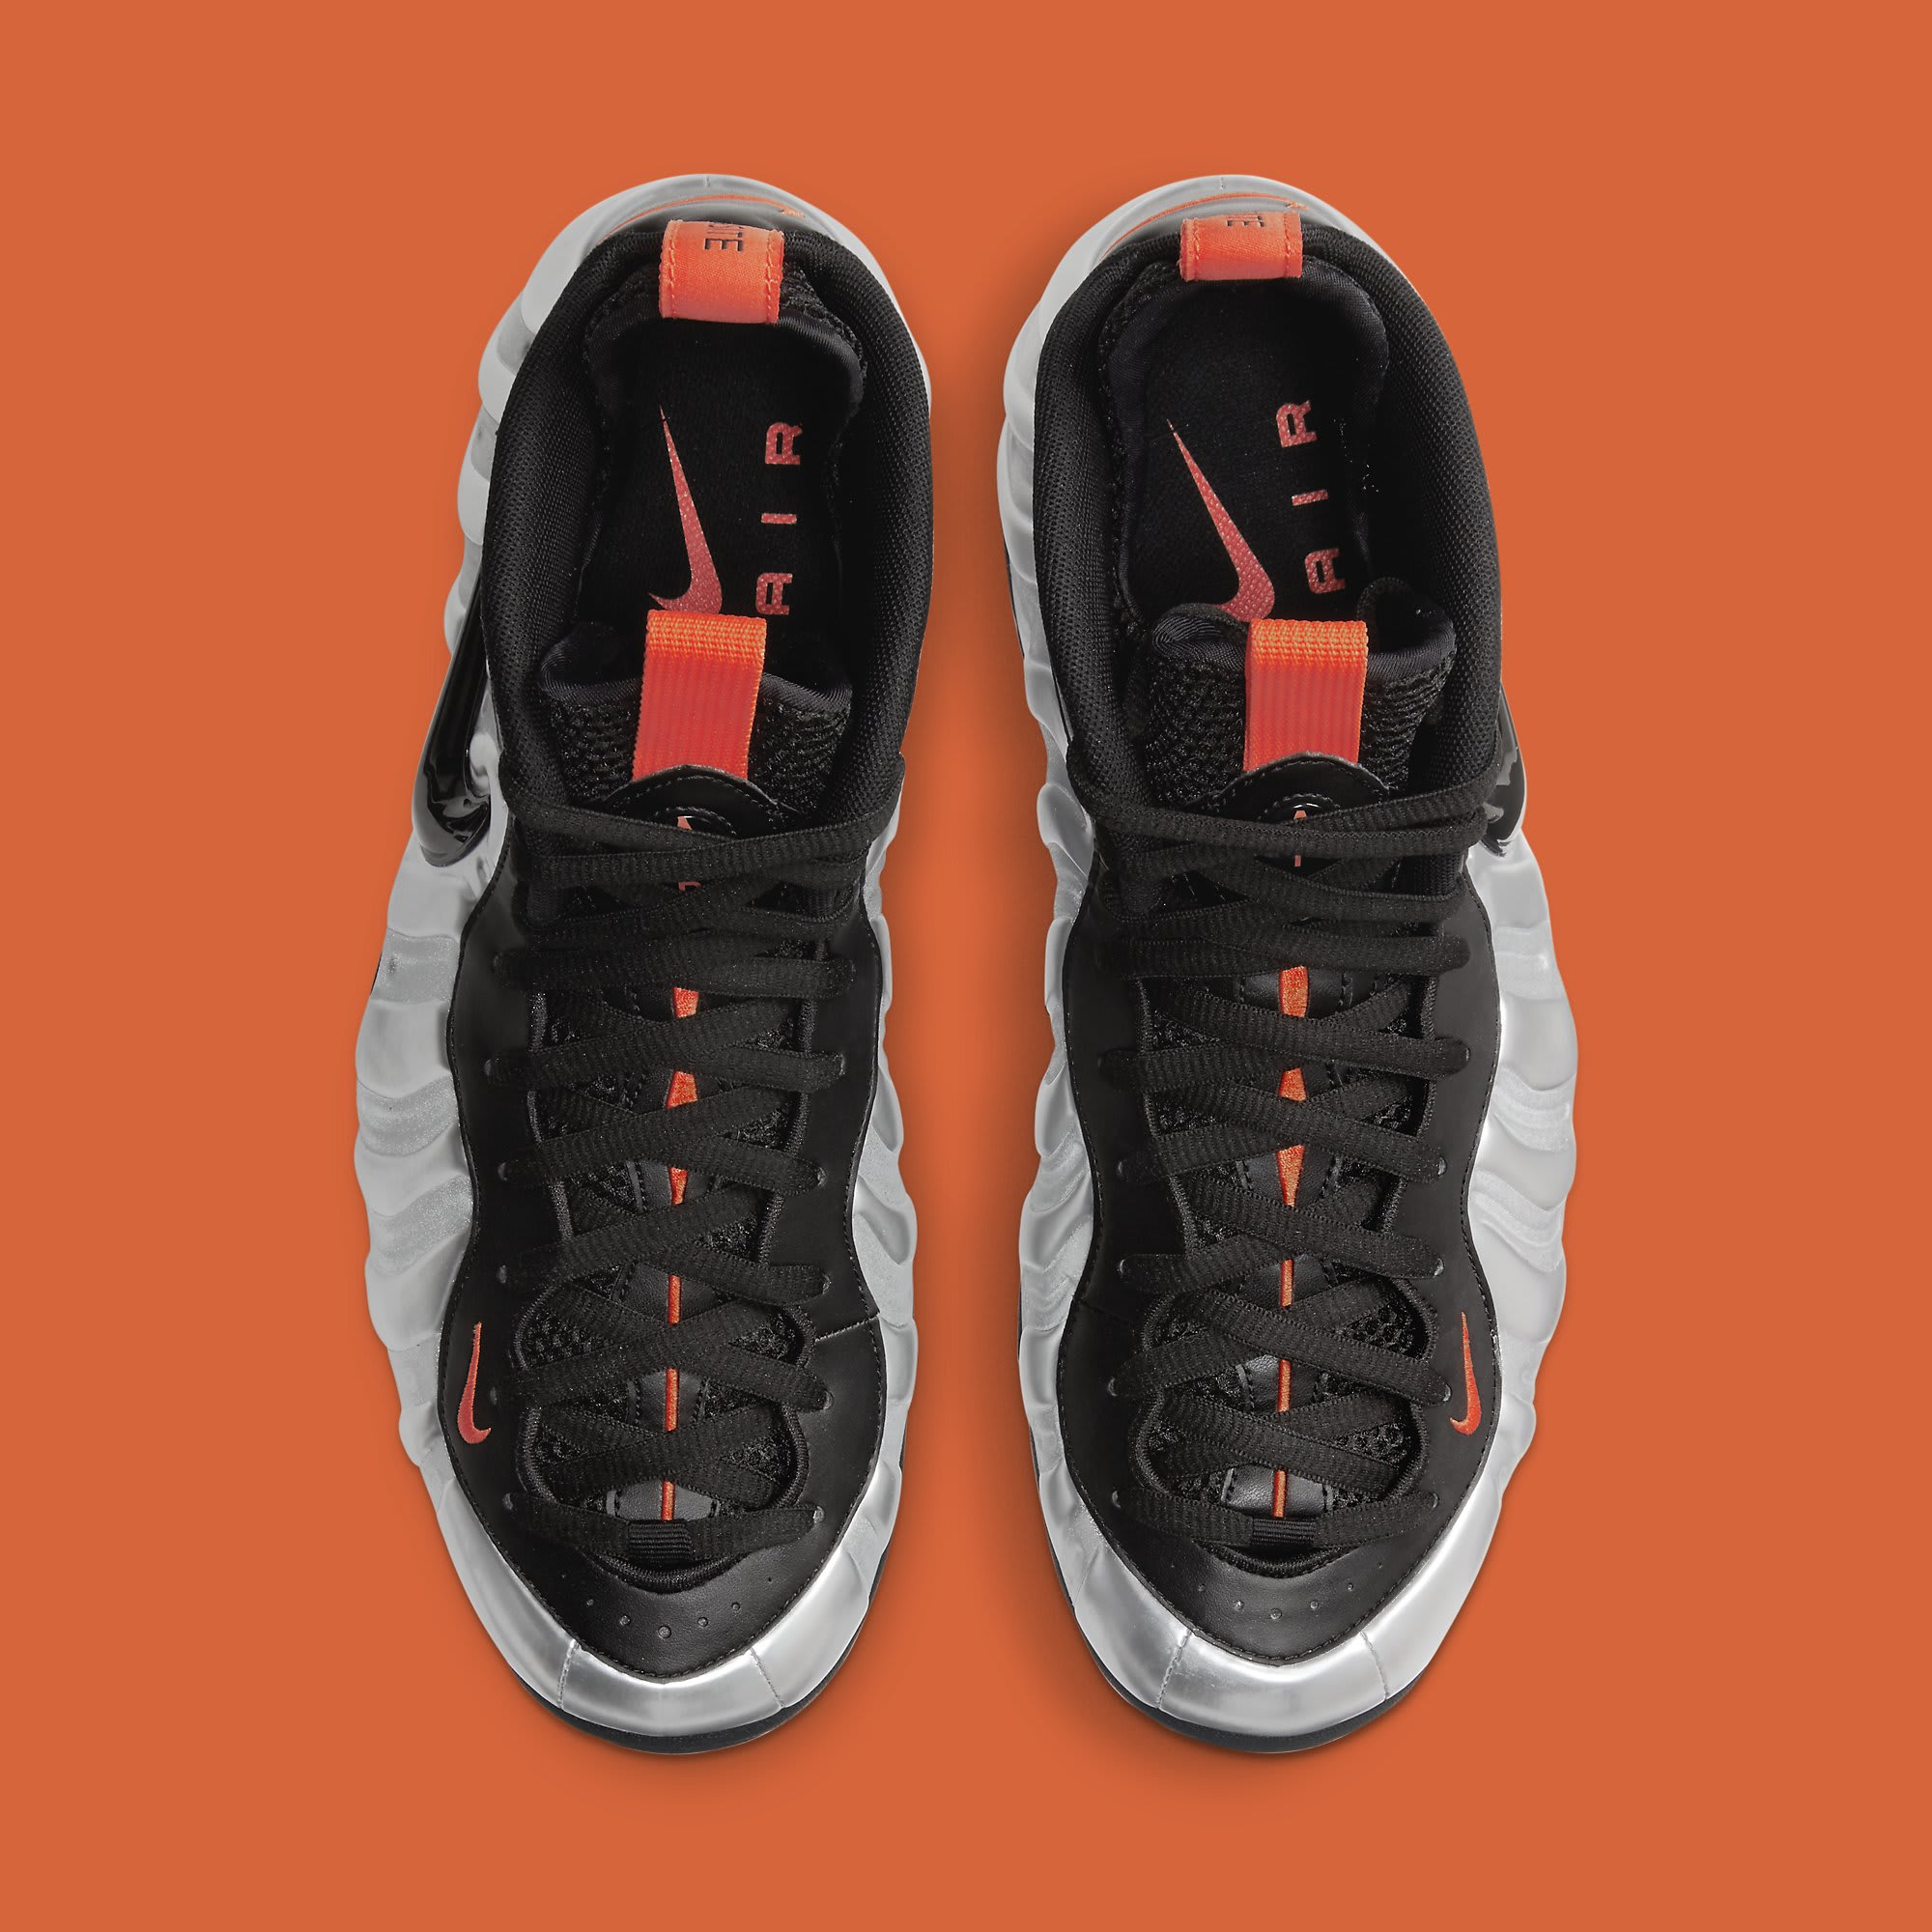 Nike Air Foamposite Pro 'Halloween' CT2286-001 Top